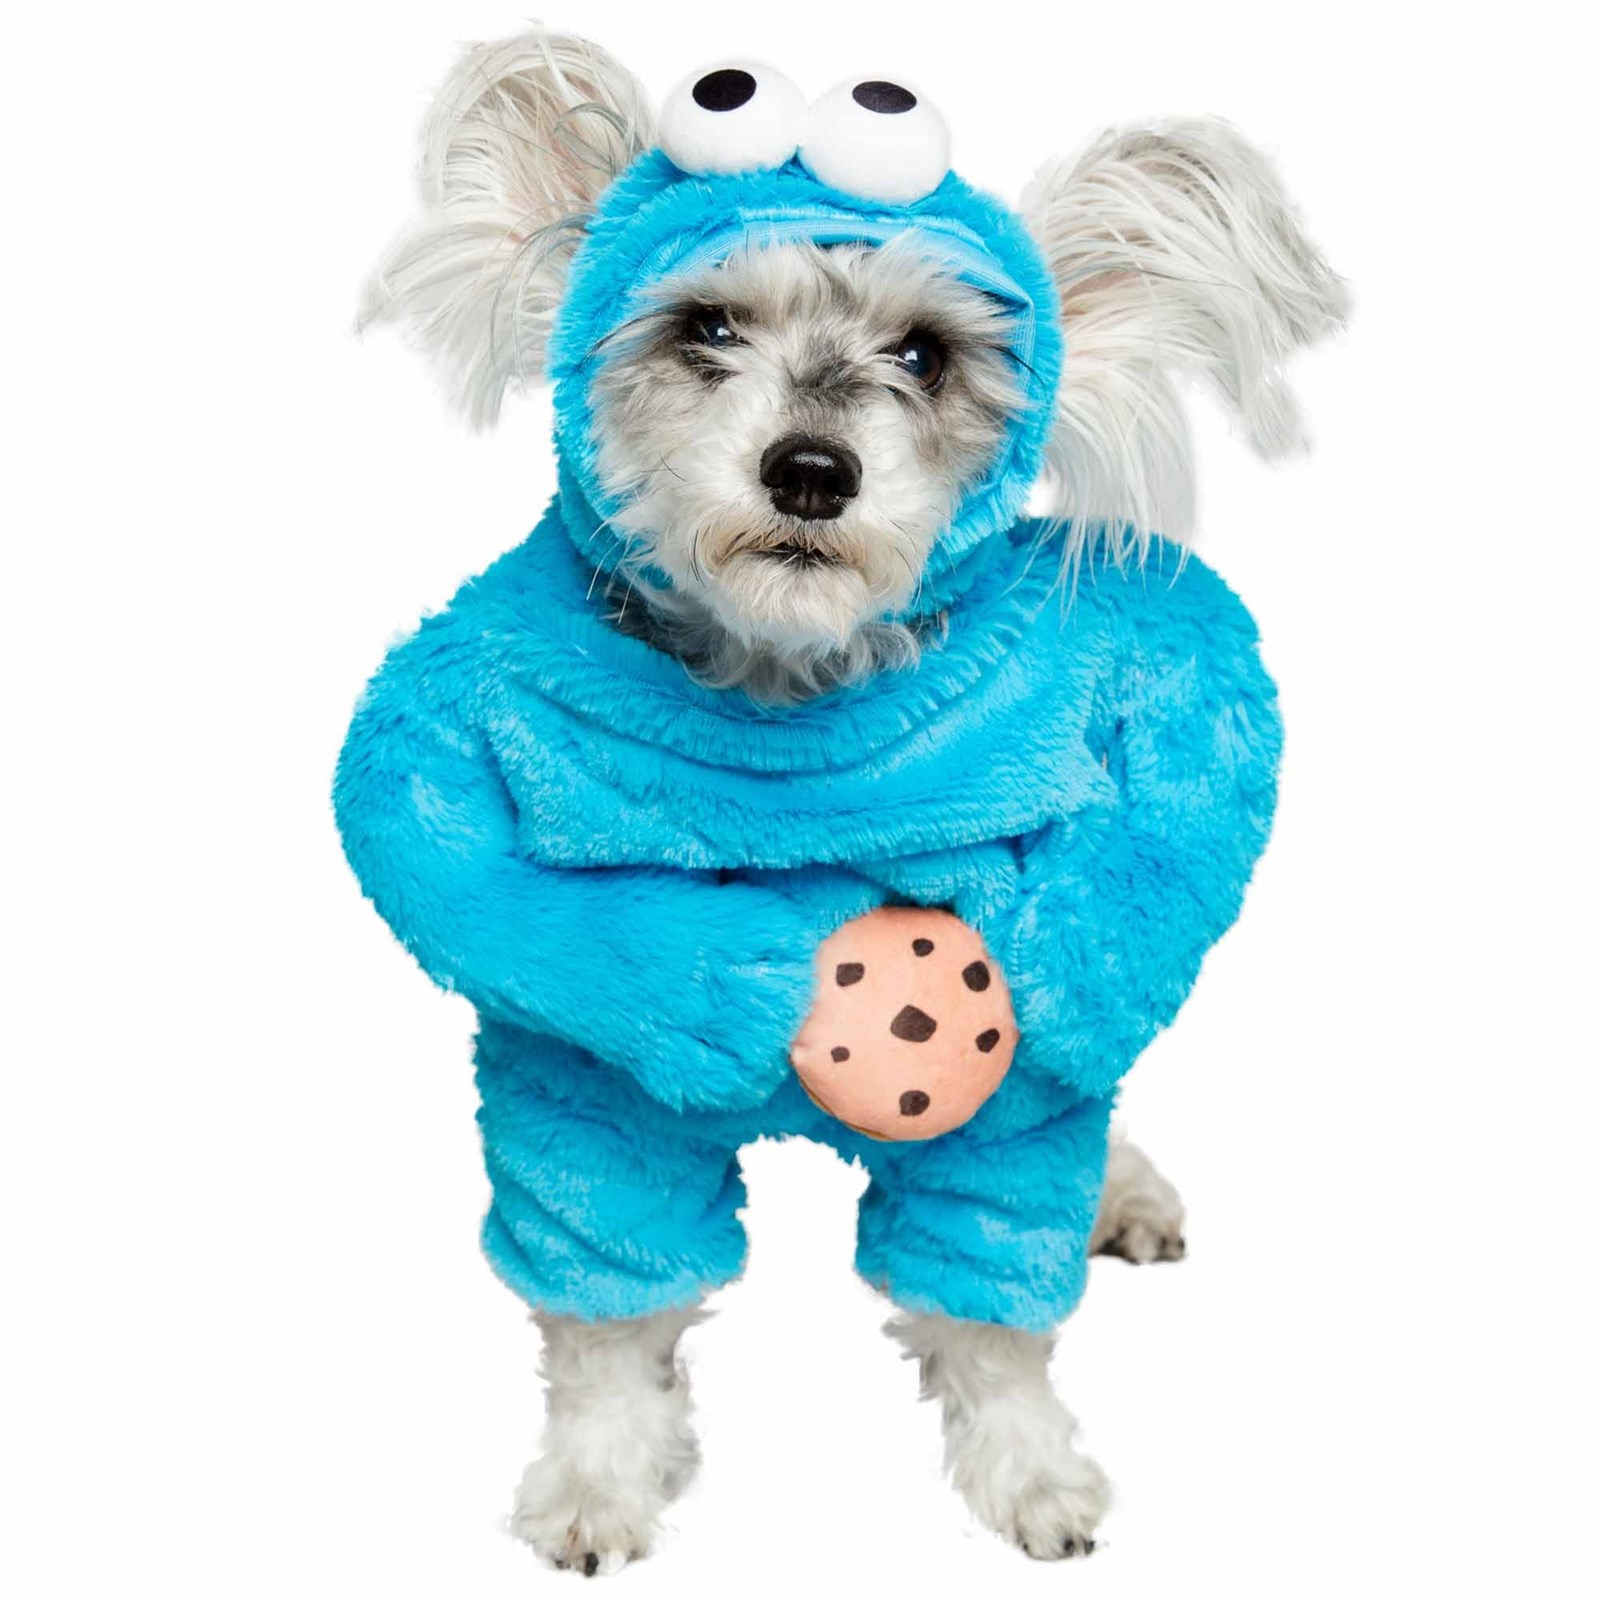 Cookie Monster Dog Costume Only $15.99 w/ Free Shipping